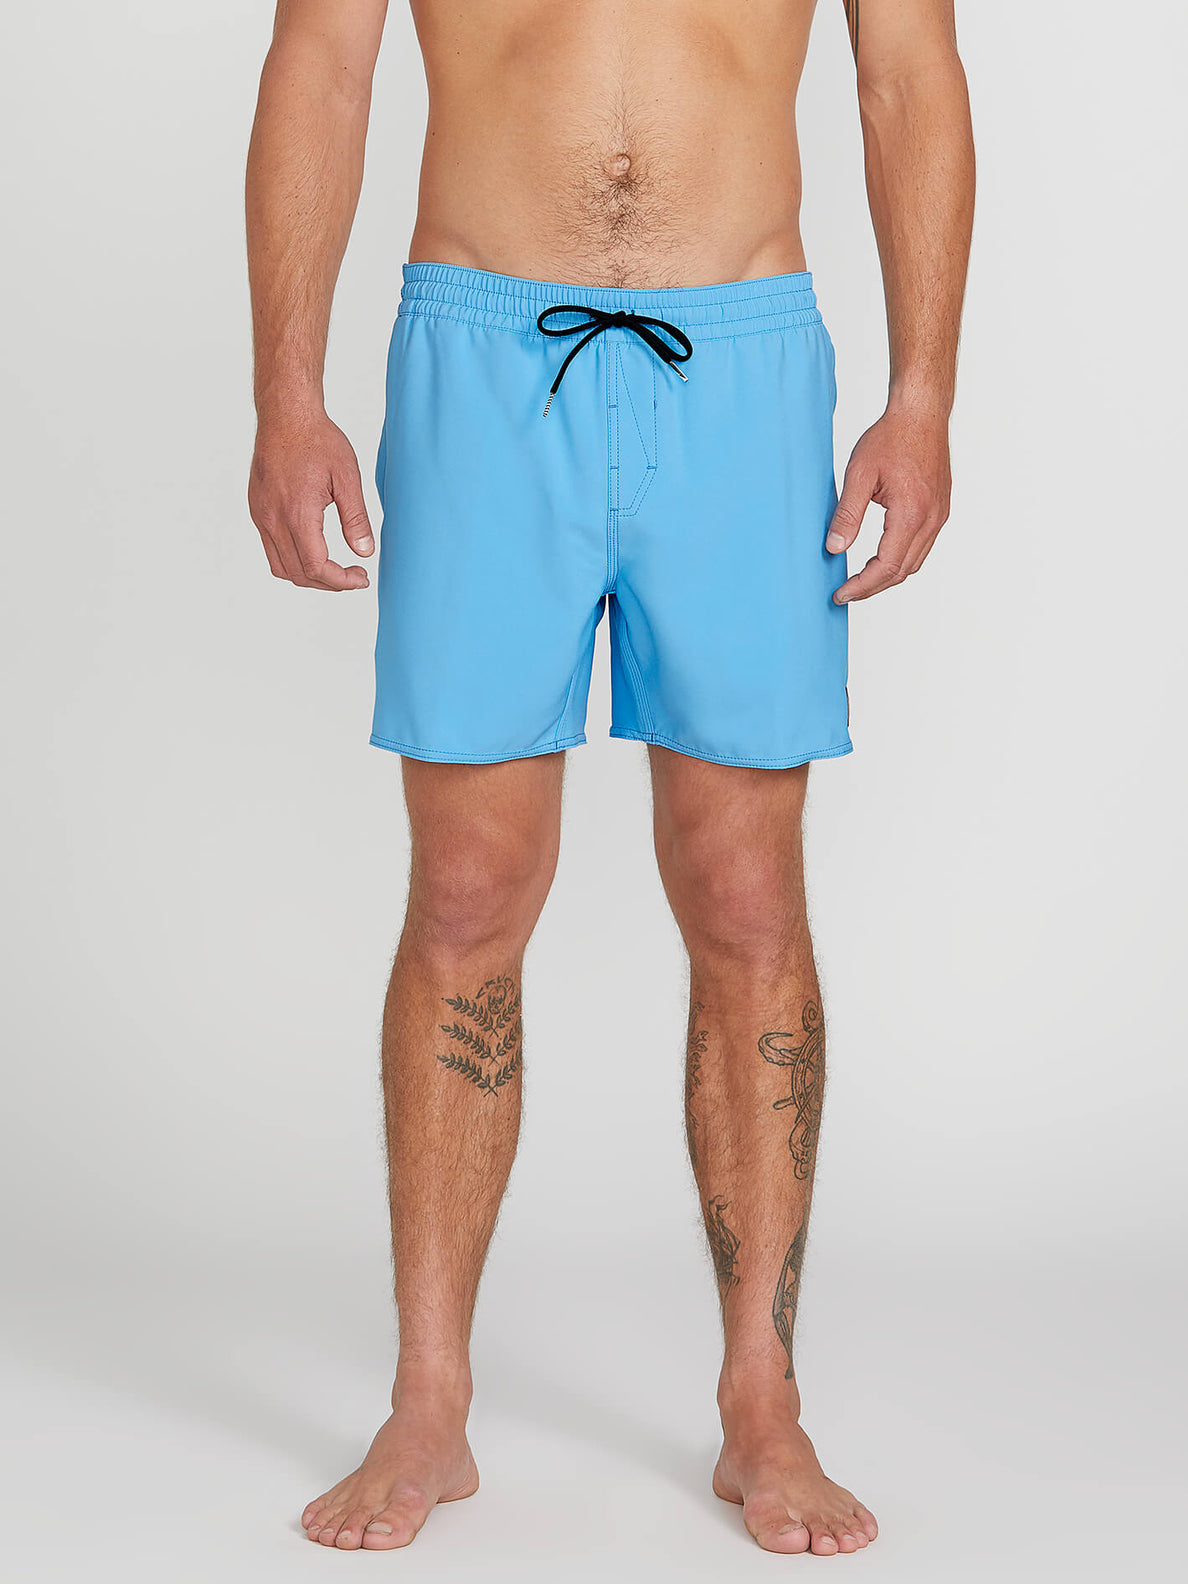 Lido Trunks - Laguna Blue (A2511901_LAG) [1]